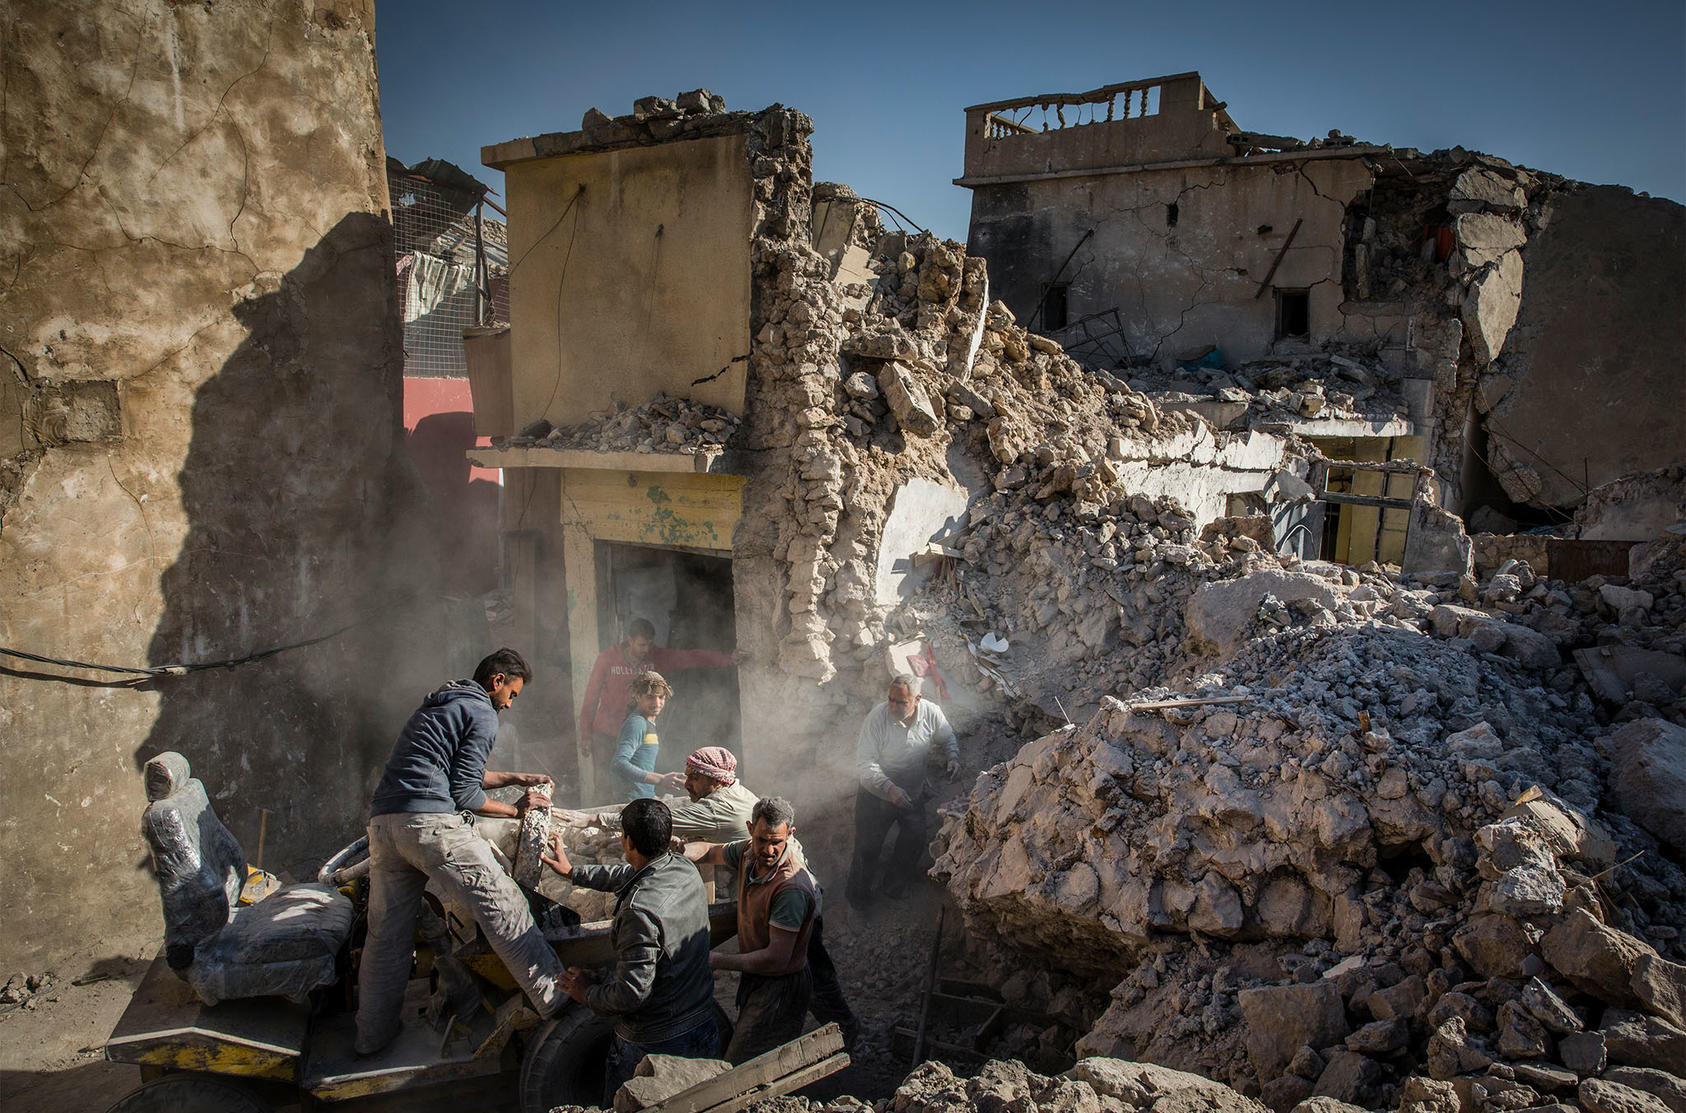 A family begins the arduous task of rebuilding its destroyed home in the heavily damaged Old City in west Mosul, Iraq, Dec. 4, 2017. (Ivor Prickett/The New York Times)